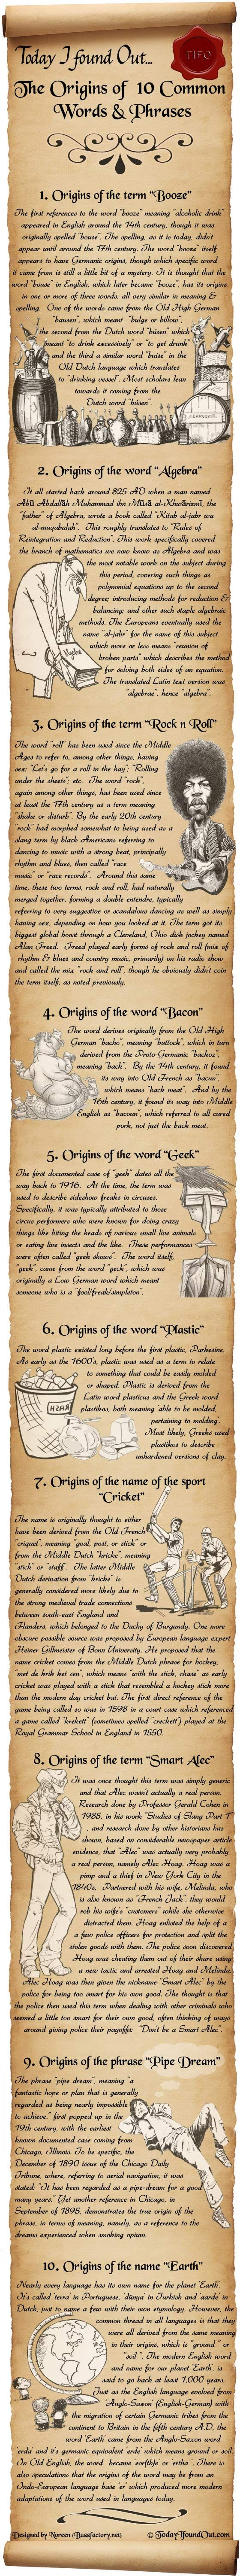 The Origins of 10 Common Words & Phrases  http://www.todayifoundout.com/index.php/2010/10/the-origins-of-10-common-words-phrases/